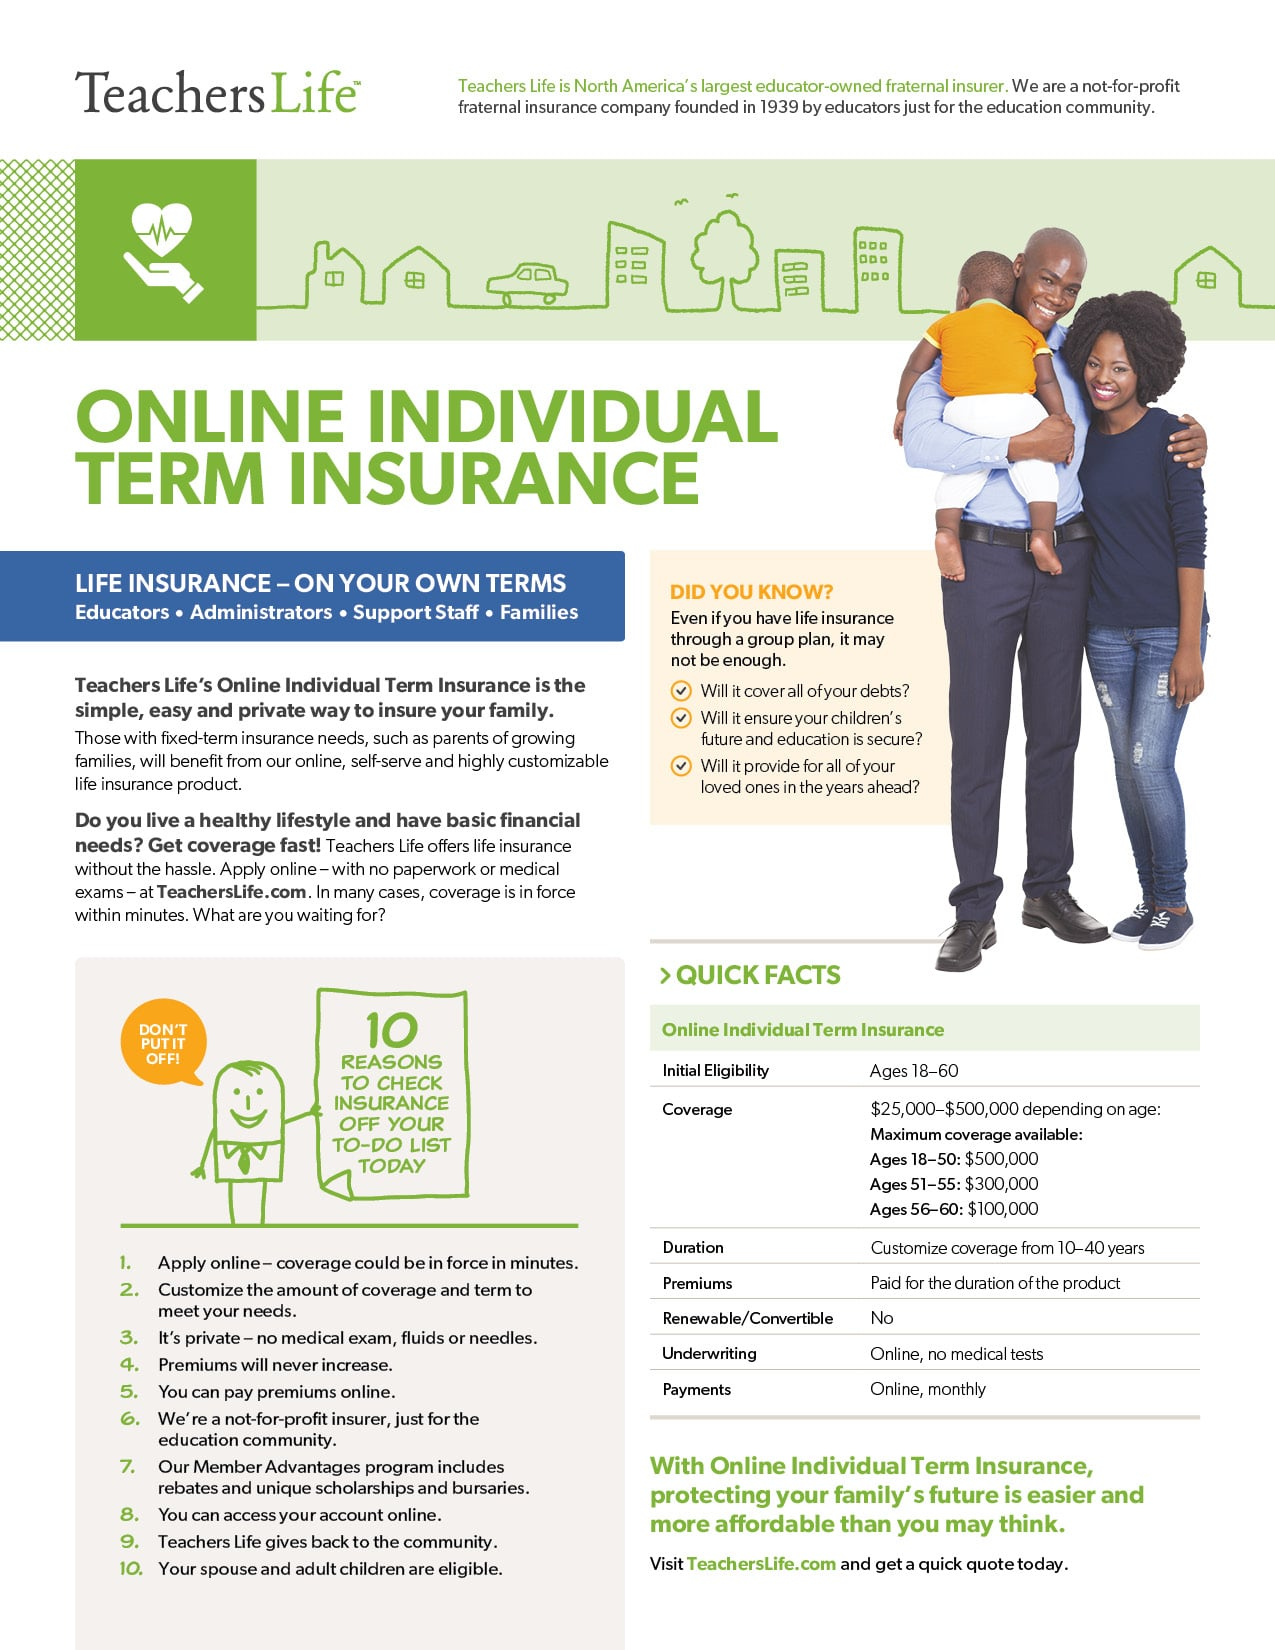 Teachers Life Online Individual Term Insurance